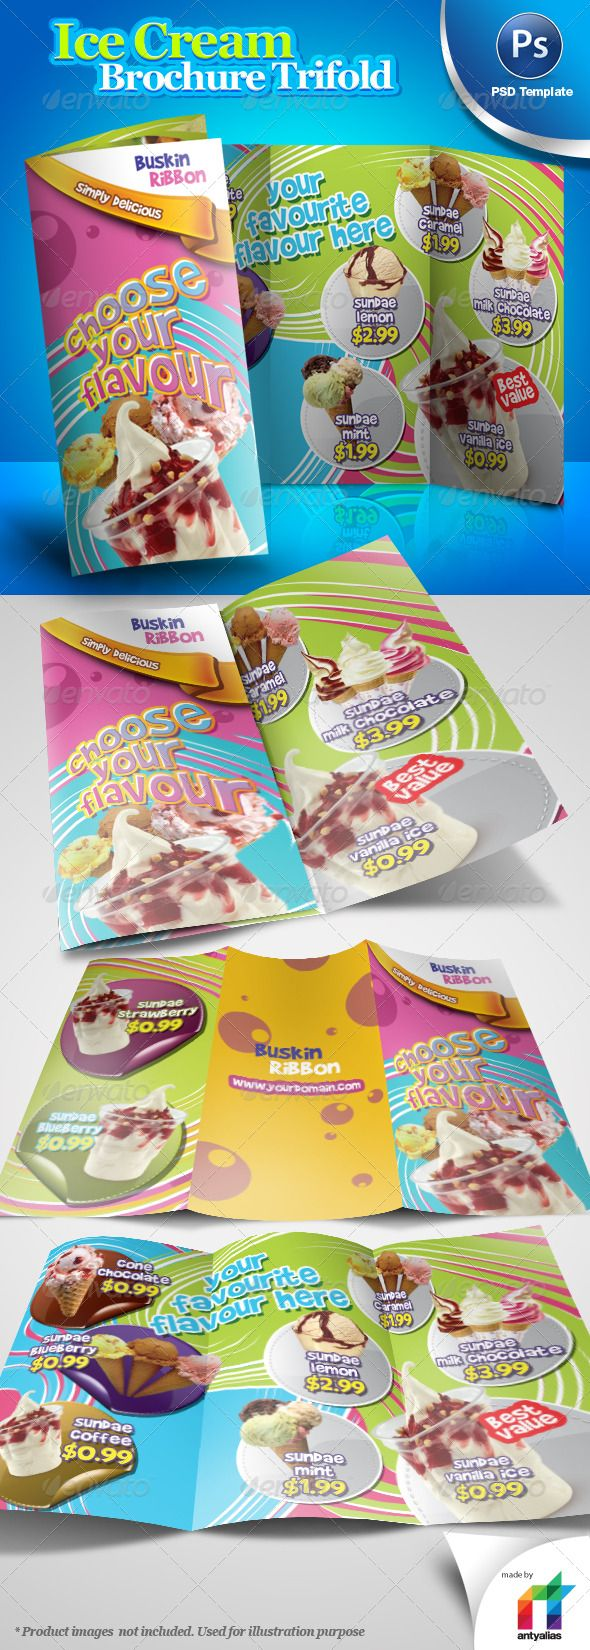 Ice Cream Brochure Trifold PSD Template - Informational Brochure Template PSD. Download here: http://graphicriver.net/item/ice-cream-brochure-trifold-psd-template/241535?s_rank=746&ref=yinkira